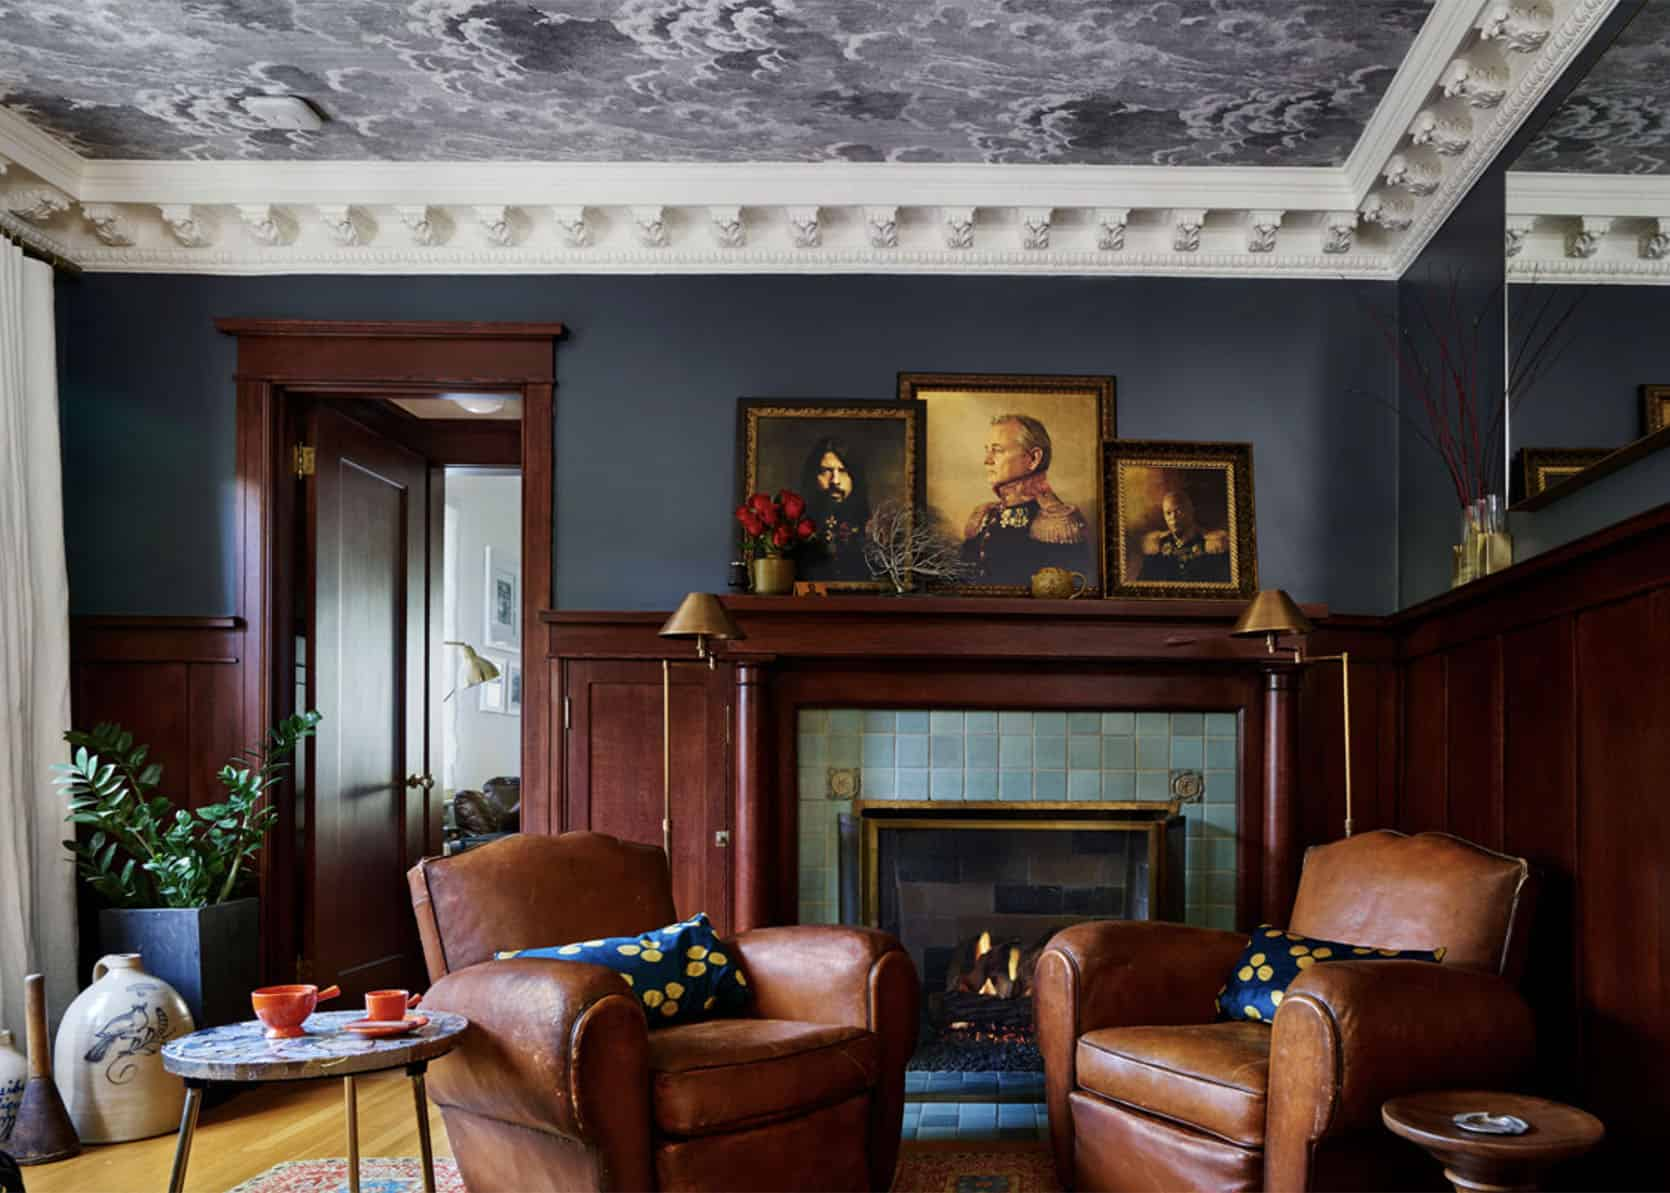 What Is Renovating Historic Homes Like And What To Splurge On Via ARCIFORM's, Anne De Wolf (Plus The Reno Formula She ALWAYS Uses)